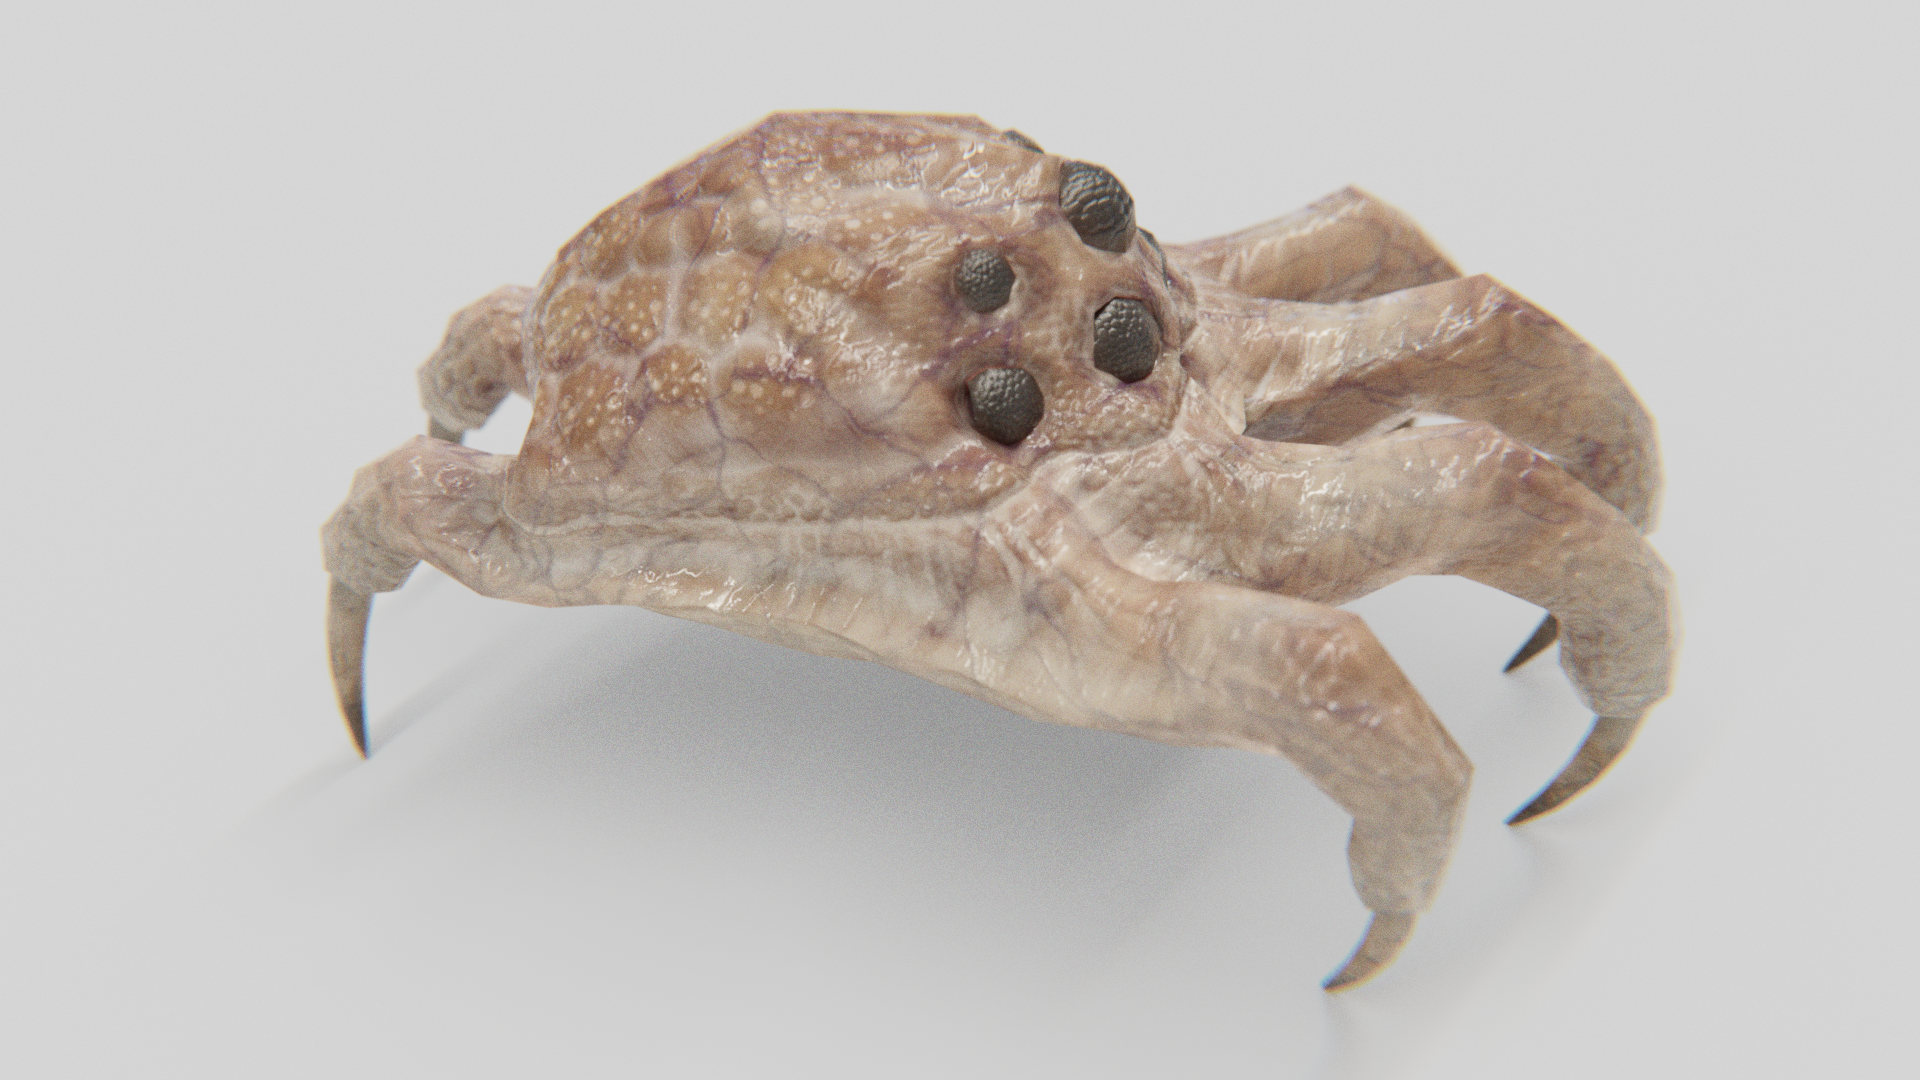 Kranion Drone - Basic View - 3d Model of Facehugger or Headcrab